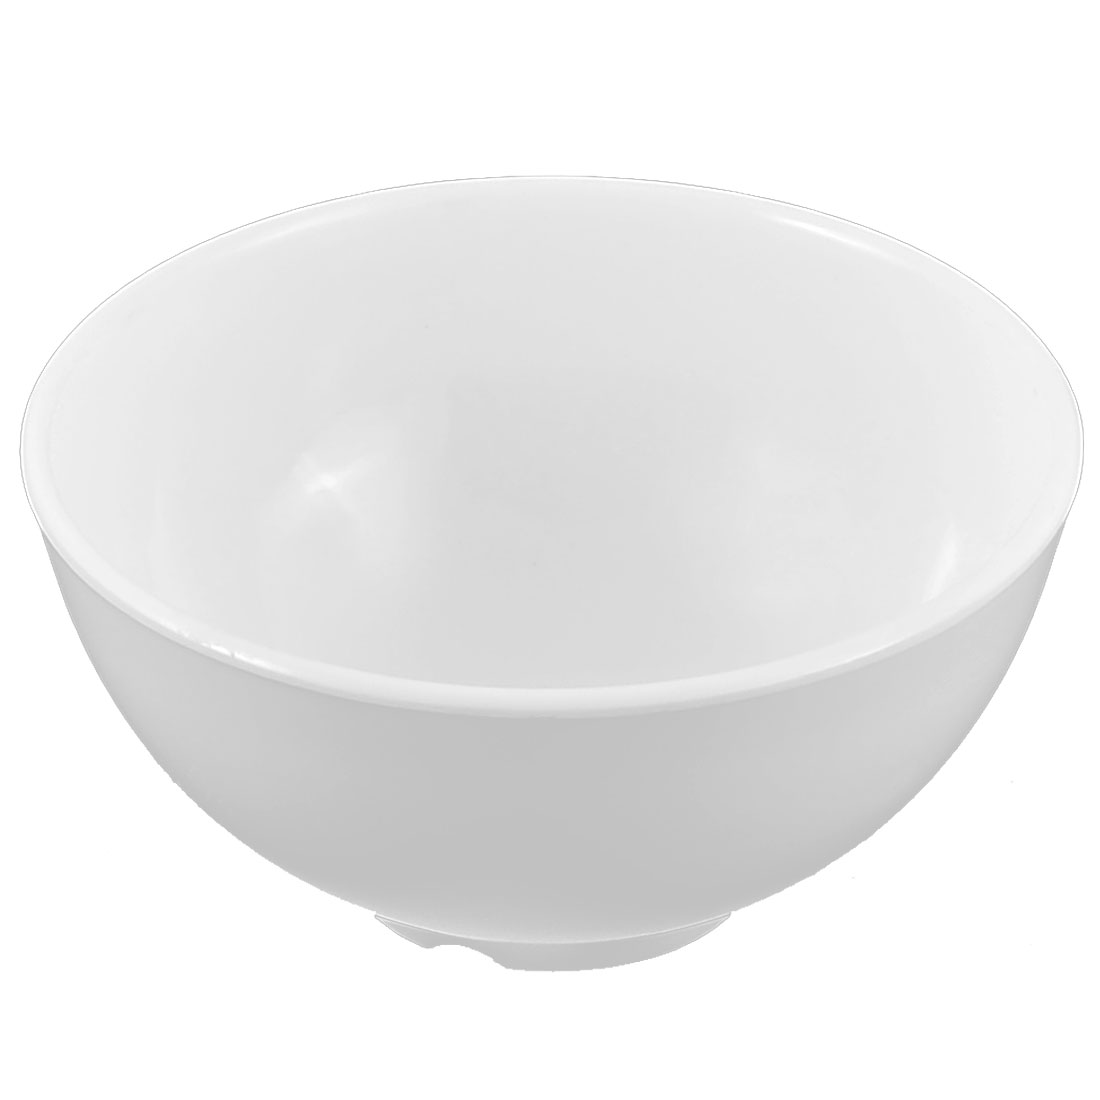 Household Kitchen Plastic Soup Porridge Food Rice Bowl White 11.5cm Dia